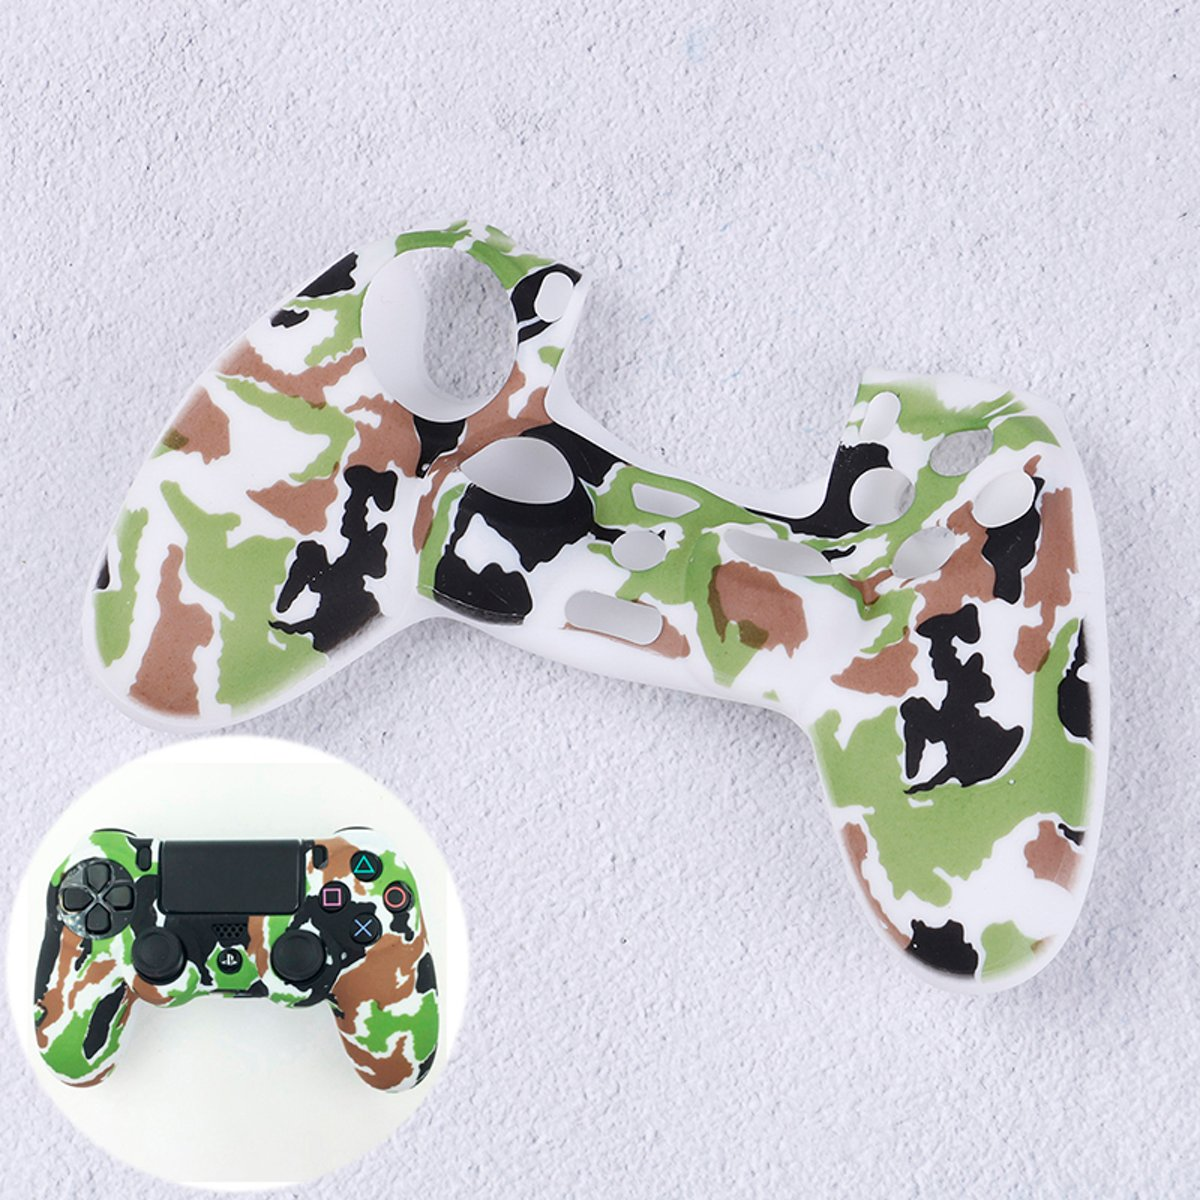 PS4   Protector Siliconen - Camouflage Army Wit -